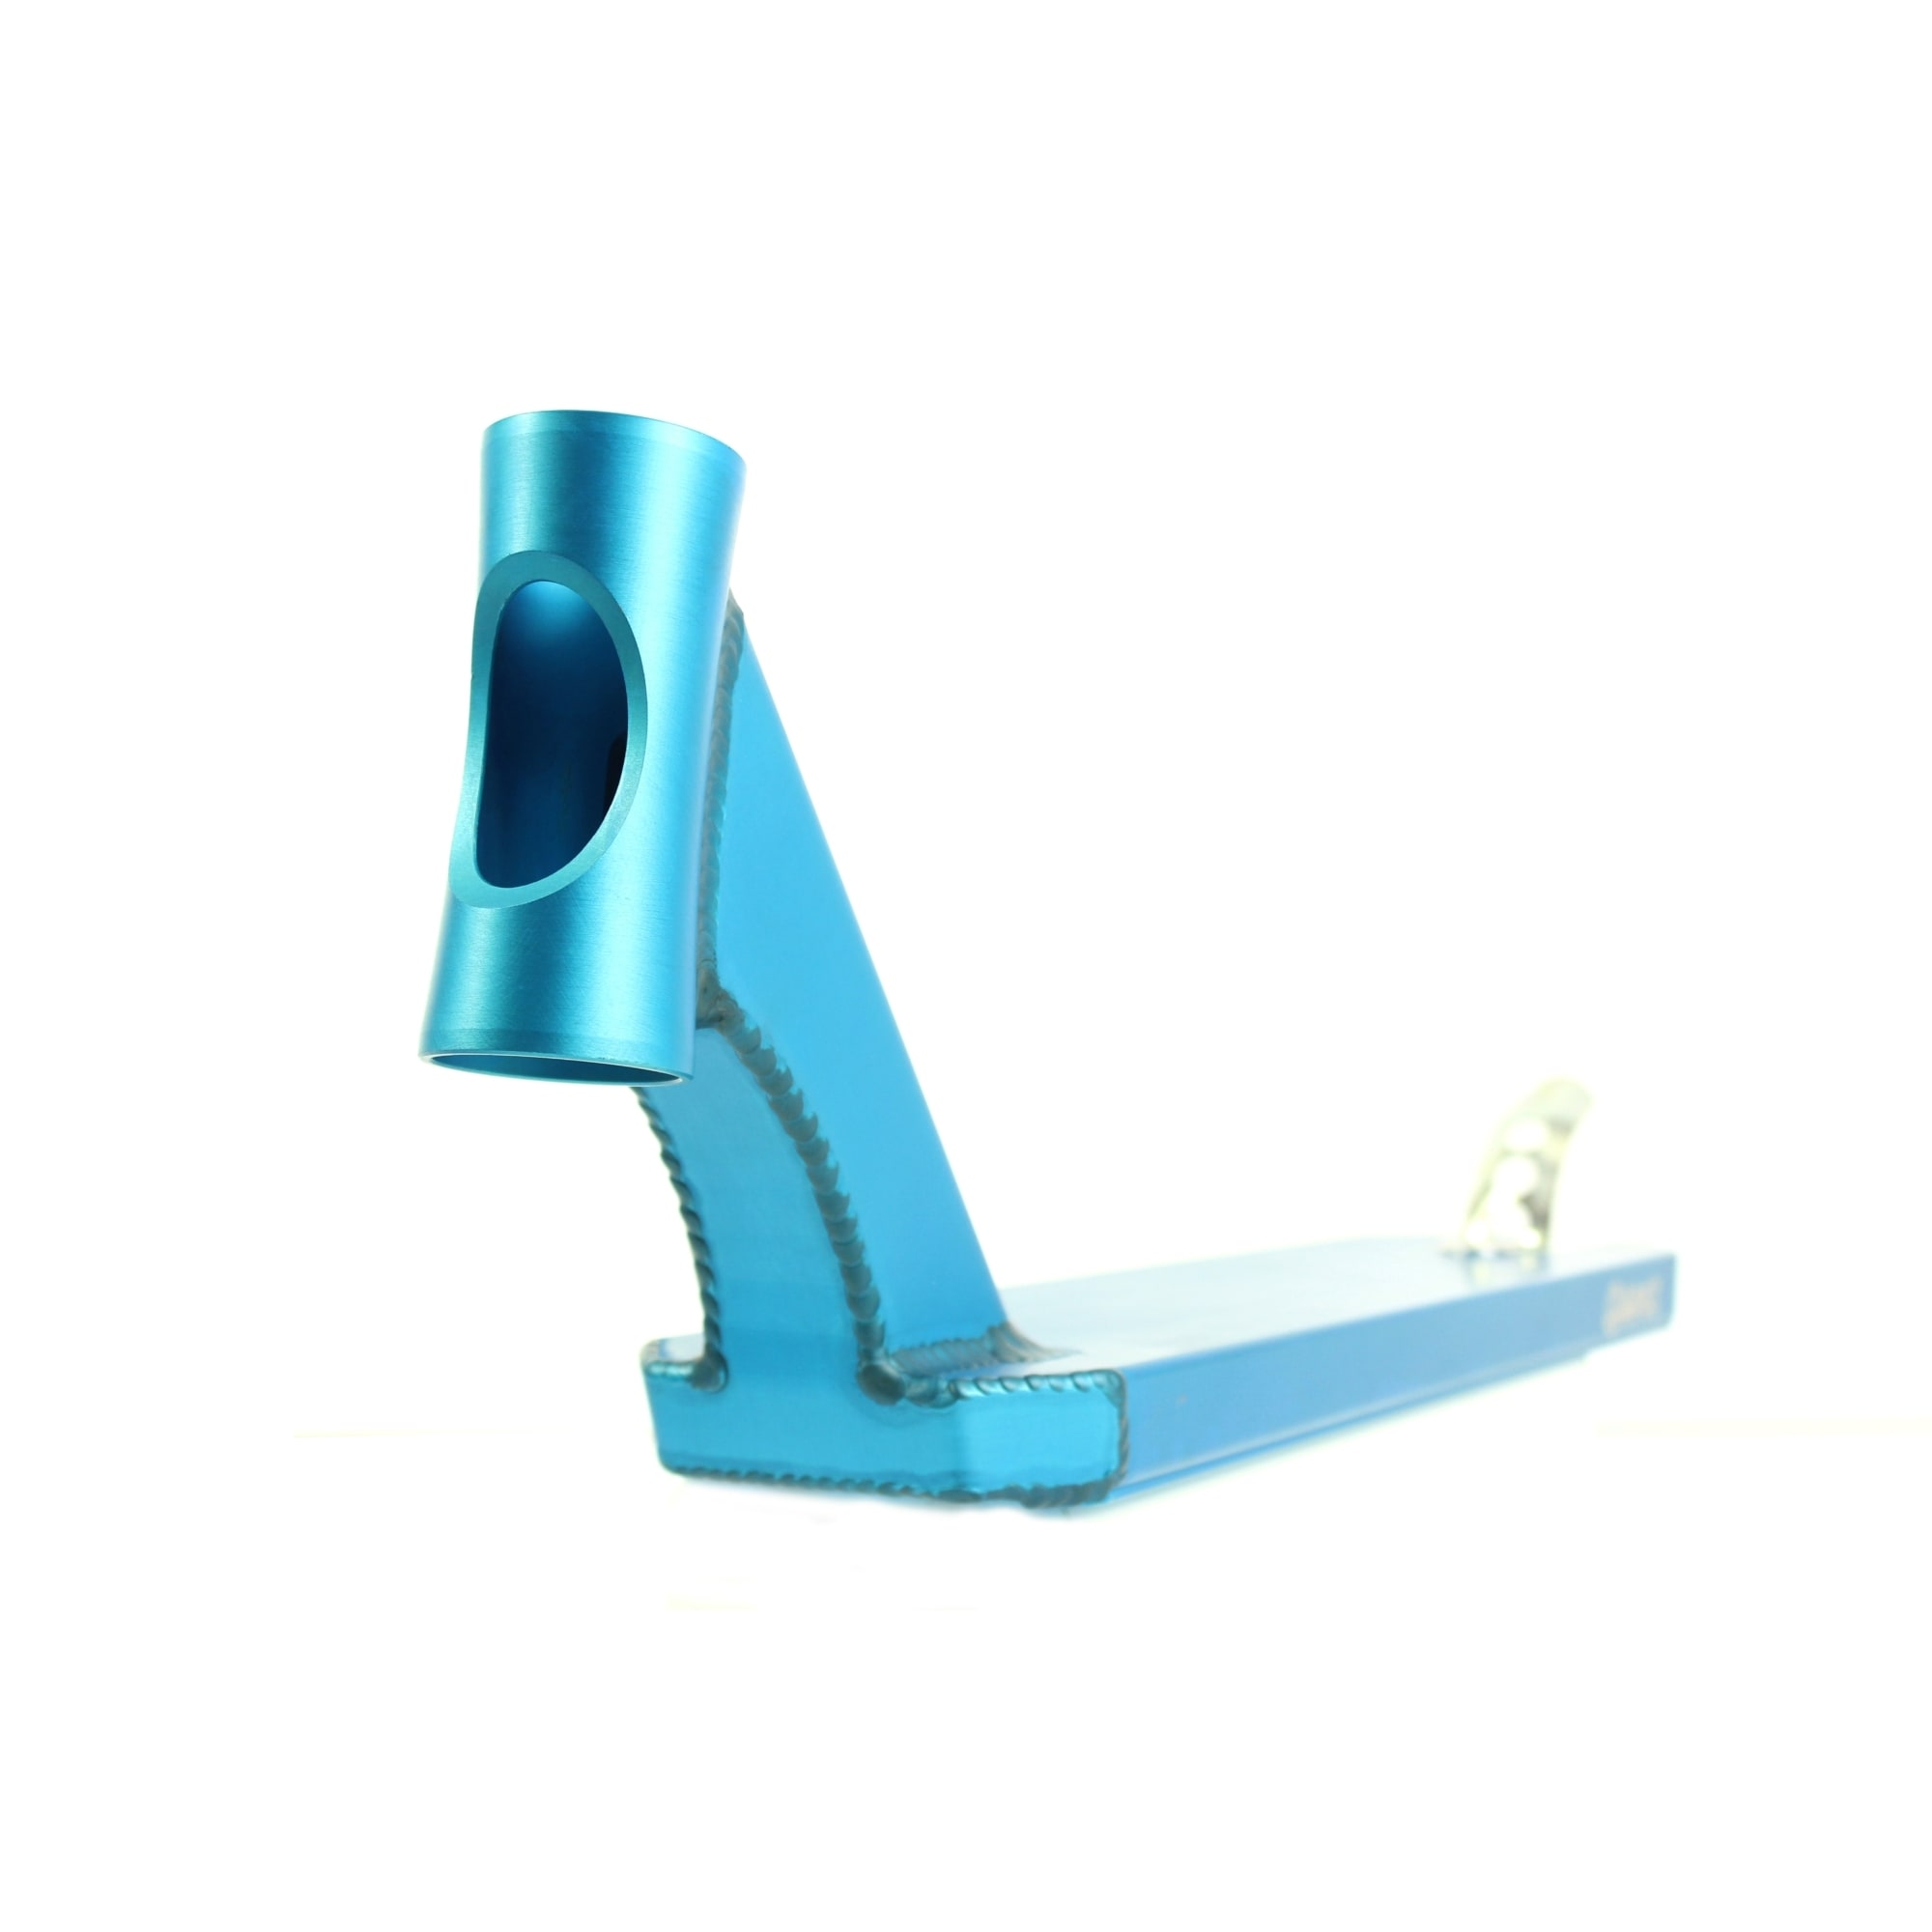 Image of Apex Pro Turquoise Scooter Deck - 600mm